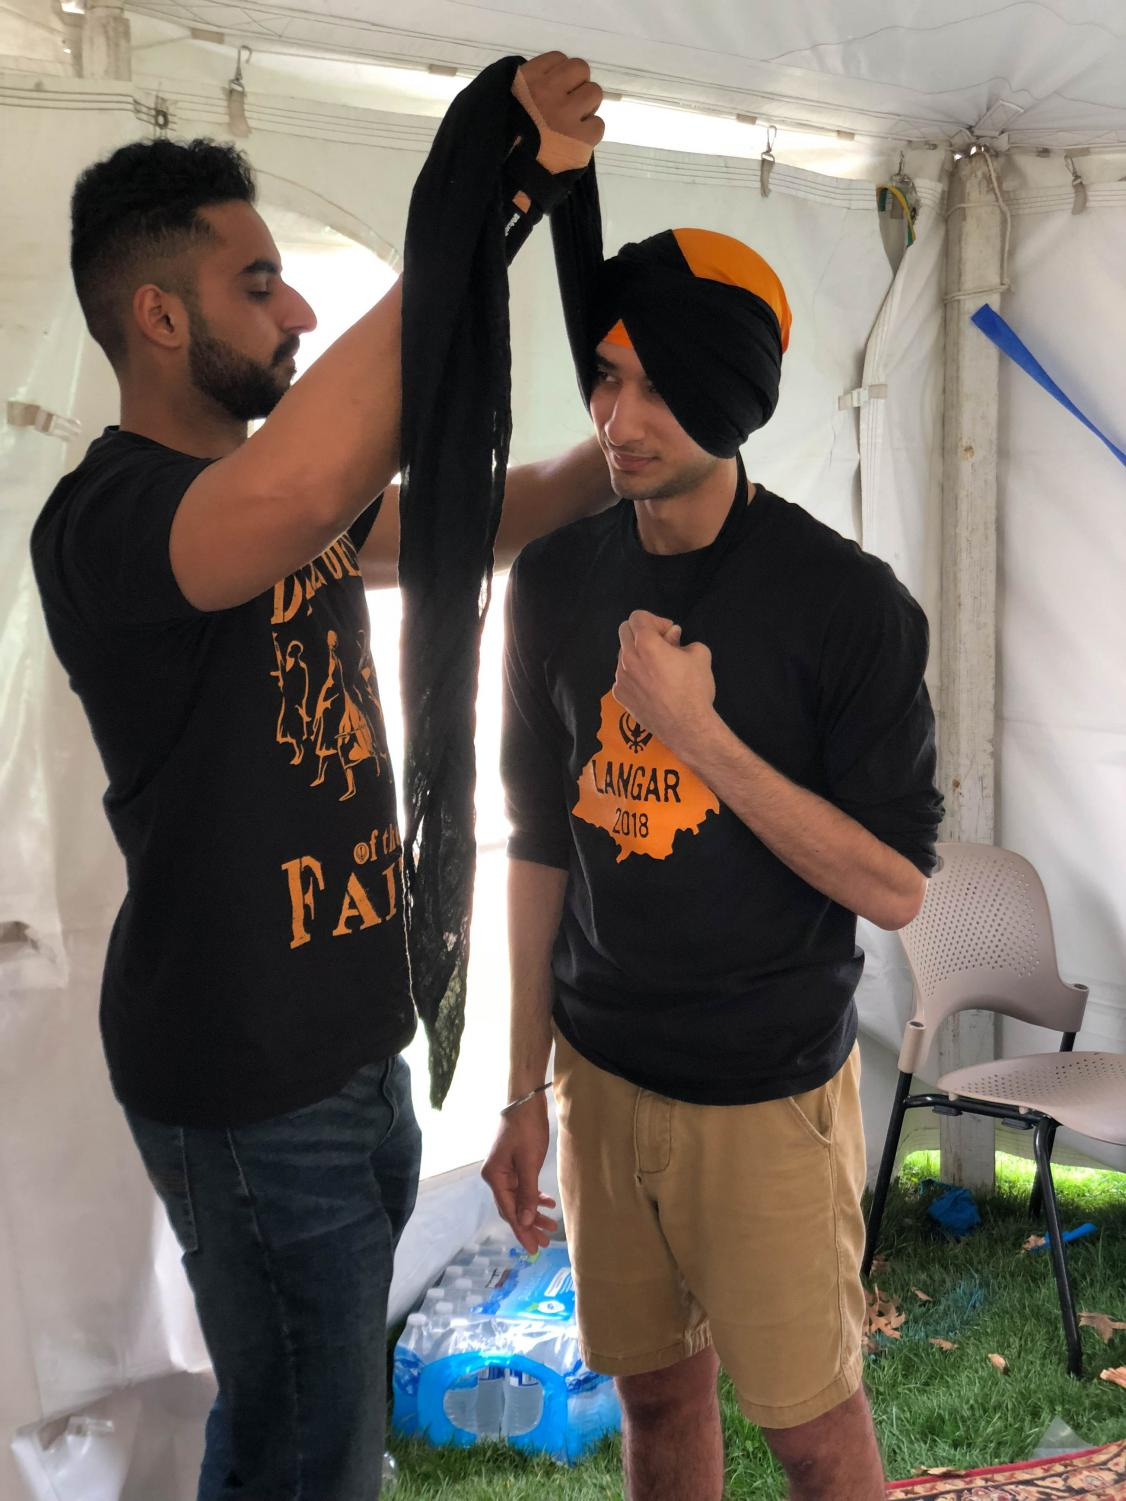 Manjot Dhillon (left) and Paawa Dandona (right) celebrate Asian American and Pacific Islander Month; The month is designed to educate about this culture.